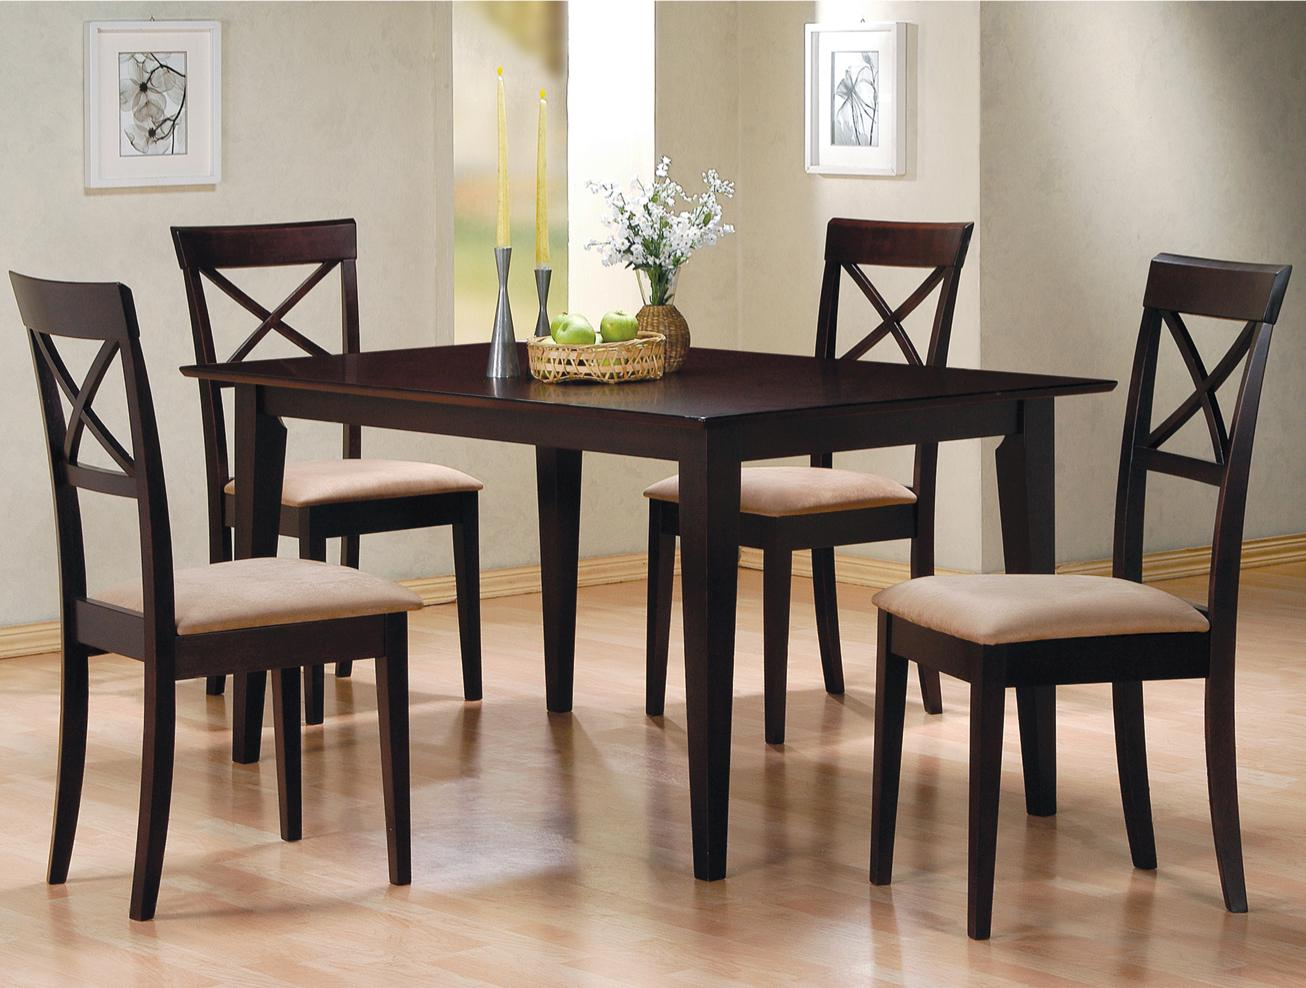 Mixing Dining Room Chairs Coaster Mix And Match 100771 Rectangle Leg Dining Table